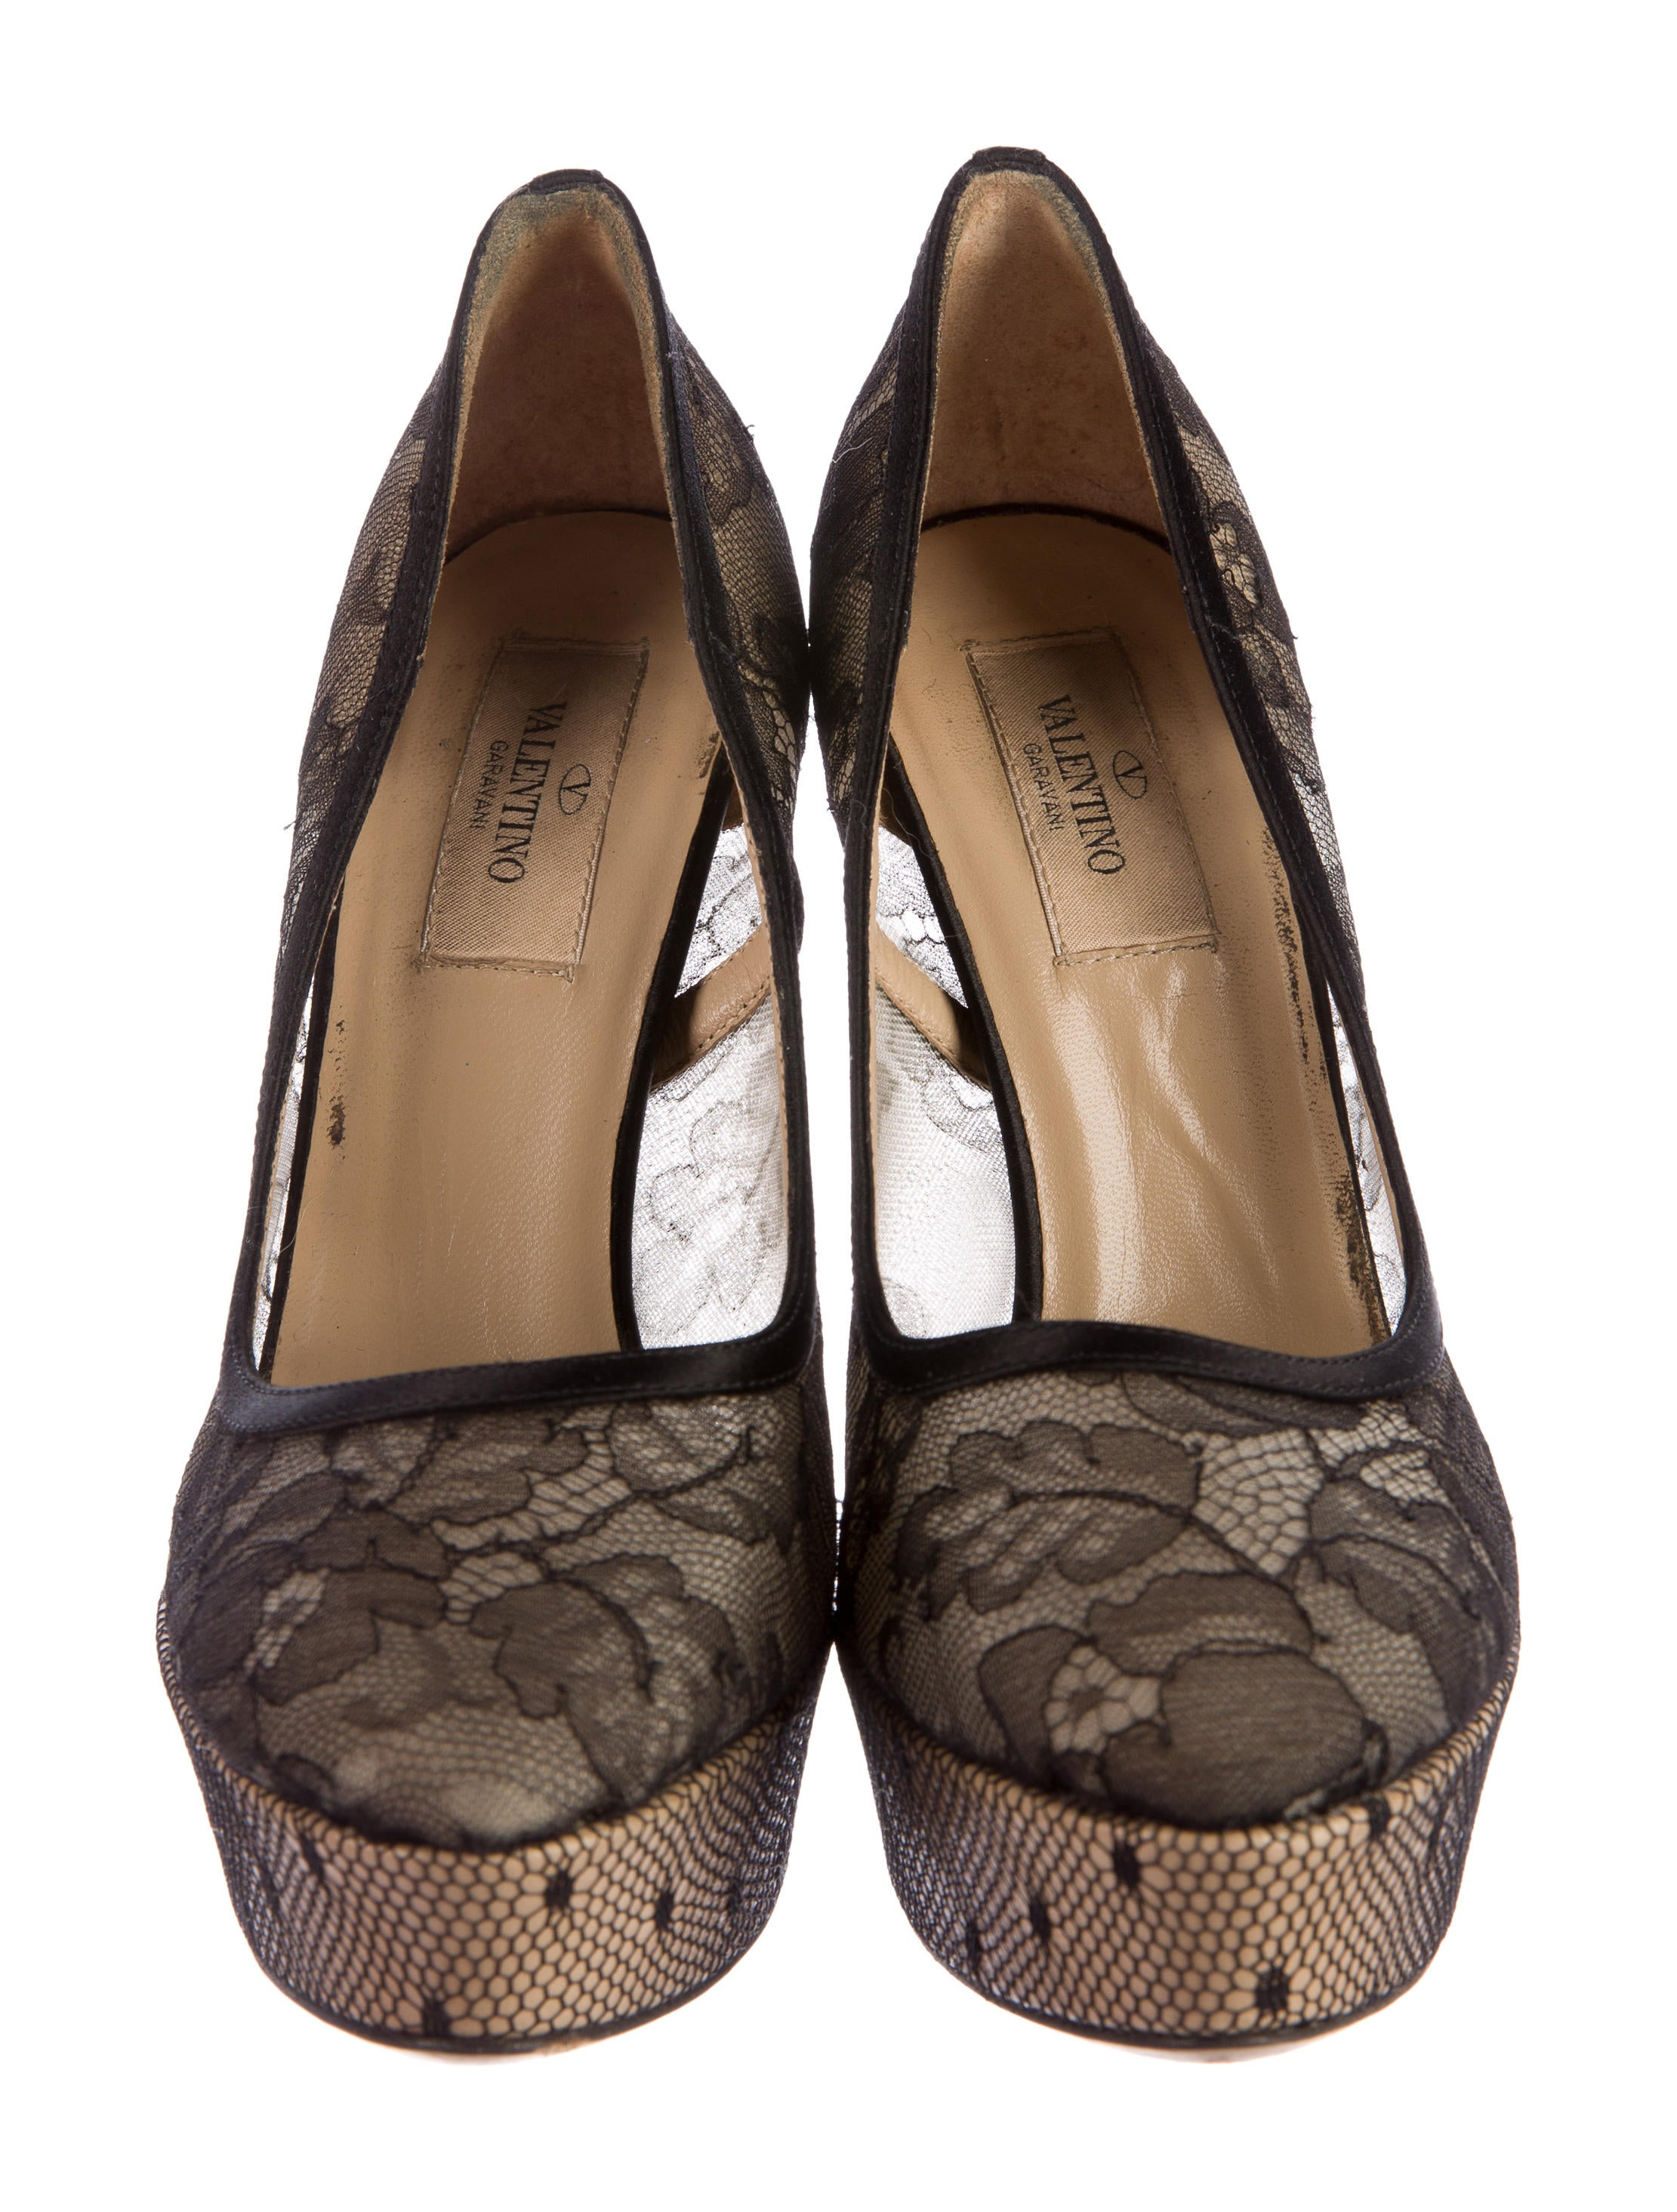 Shop black lace up platform shoes at Neiman Marcus, where you will find free shipping on the latest in fashion from top designers.